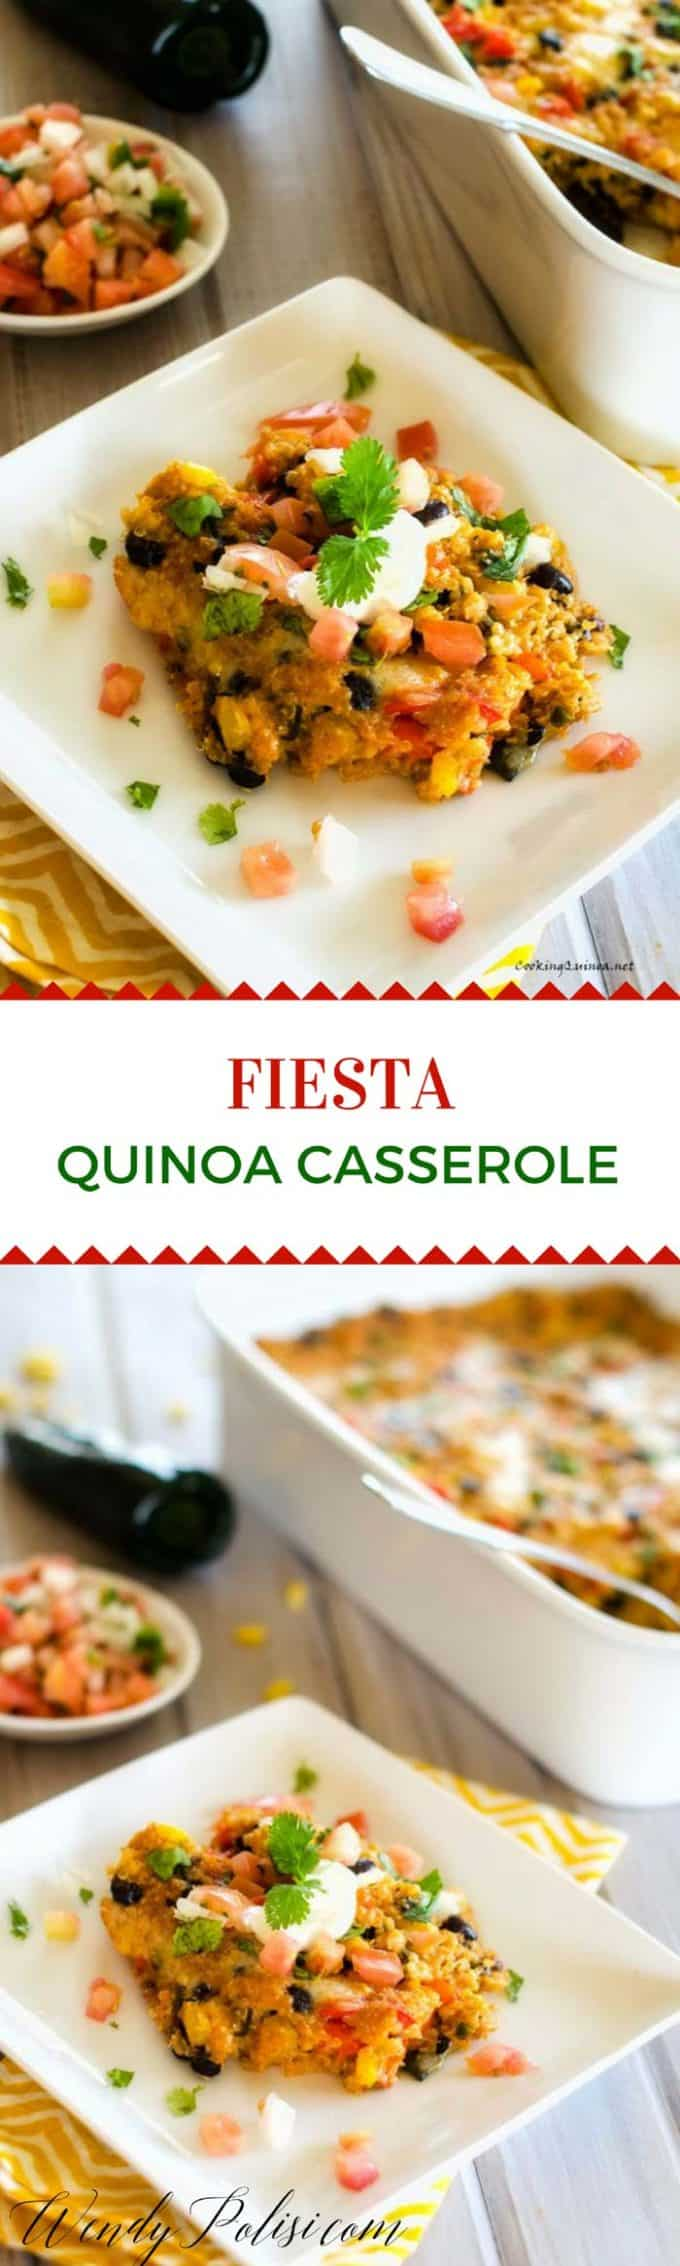 This Fiesta Quinoa Casserole is a family favorite that will have your pickiest of eaters asking for seconds. A great kid-friendly quinoa recipe that is a perfect introduction to quinoa for kids!